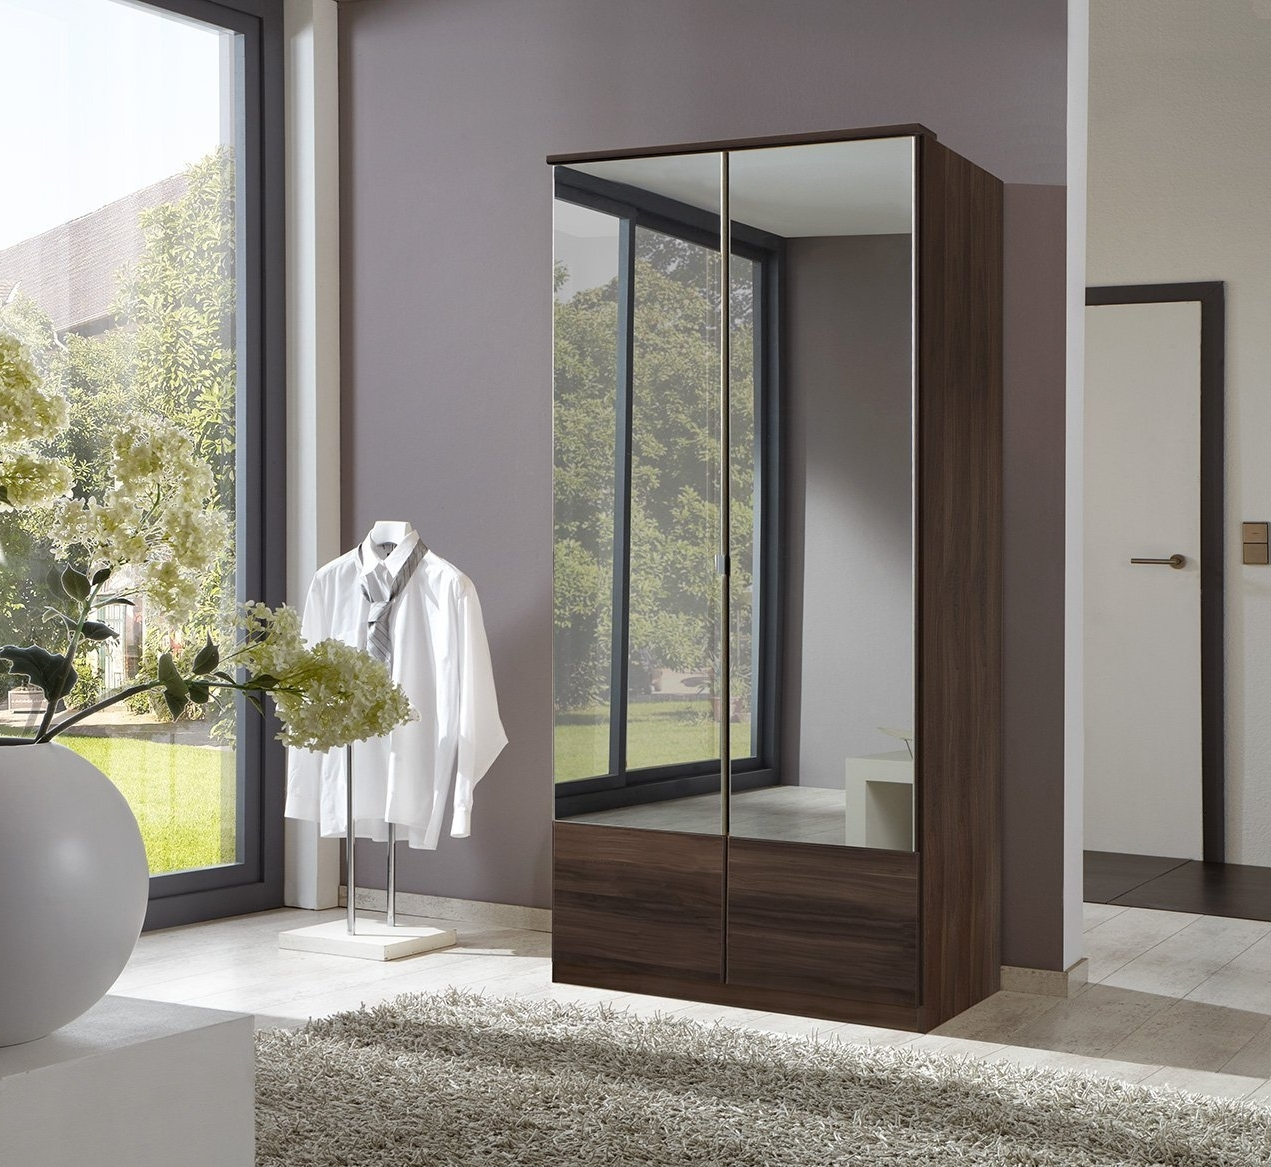 2018 Cheap Wardrobes With Mirrors Throughout German Imago Light Oak 2 Door Mirror Door Wardrobe: Amazon.co (View 1 of 15)